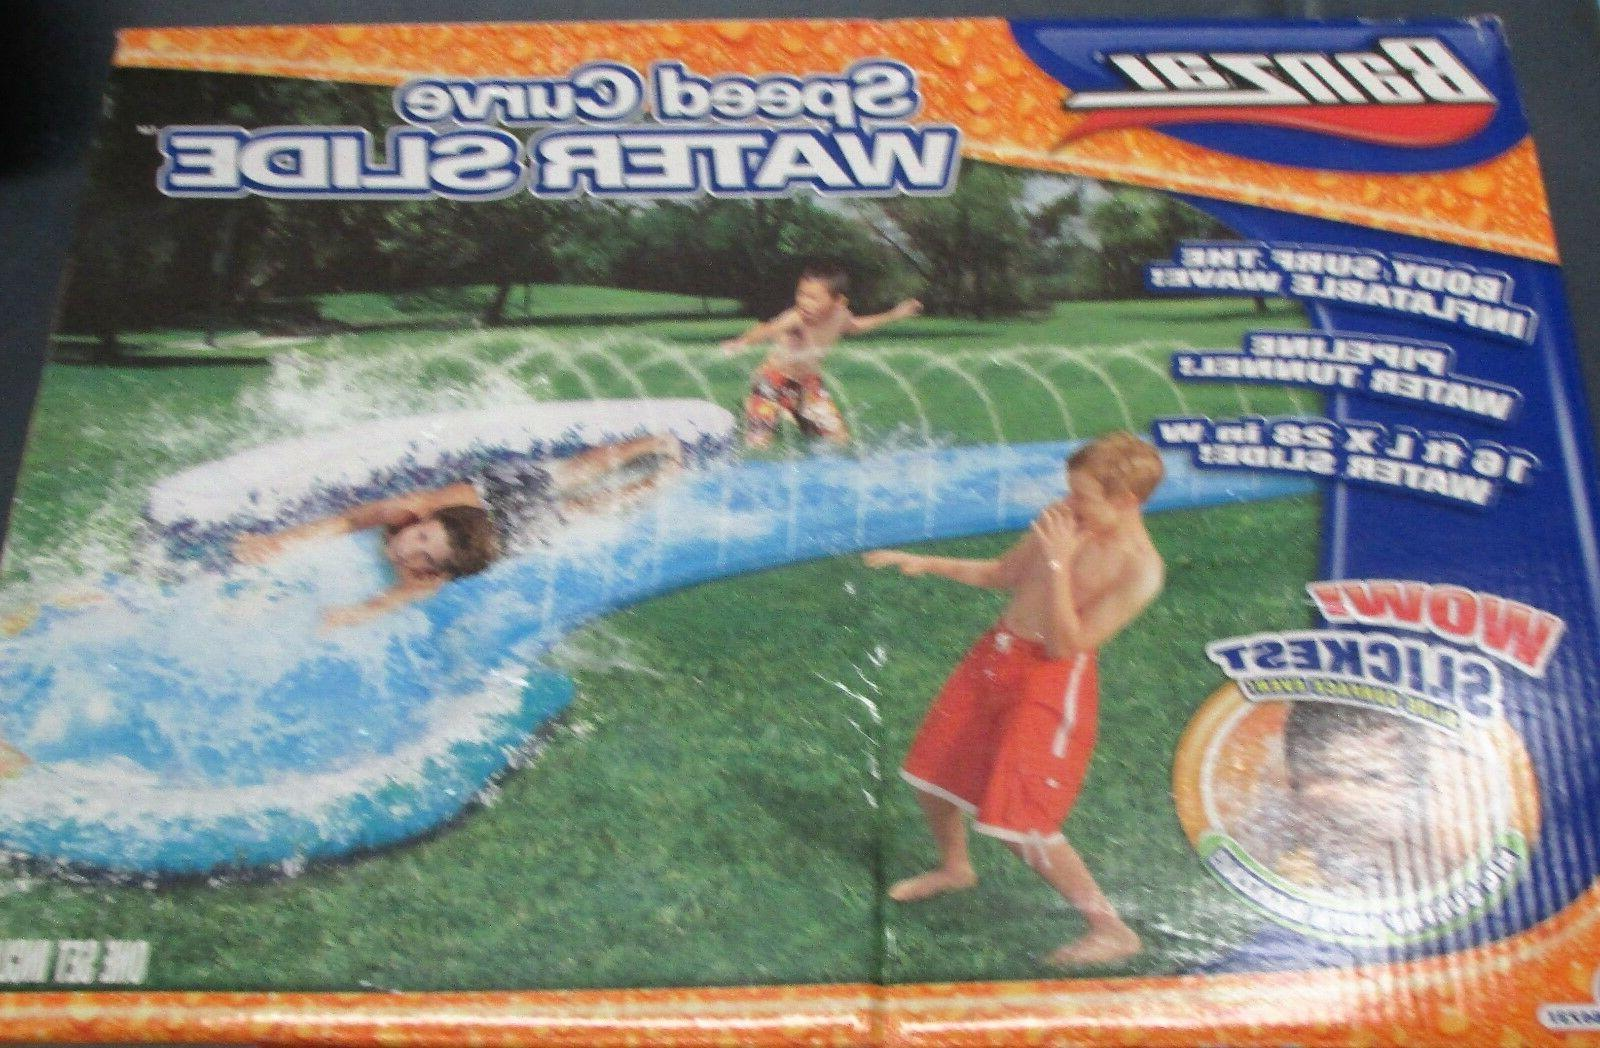 speed curve toy lawn water slide new